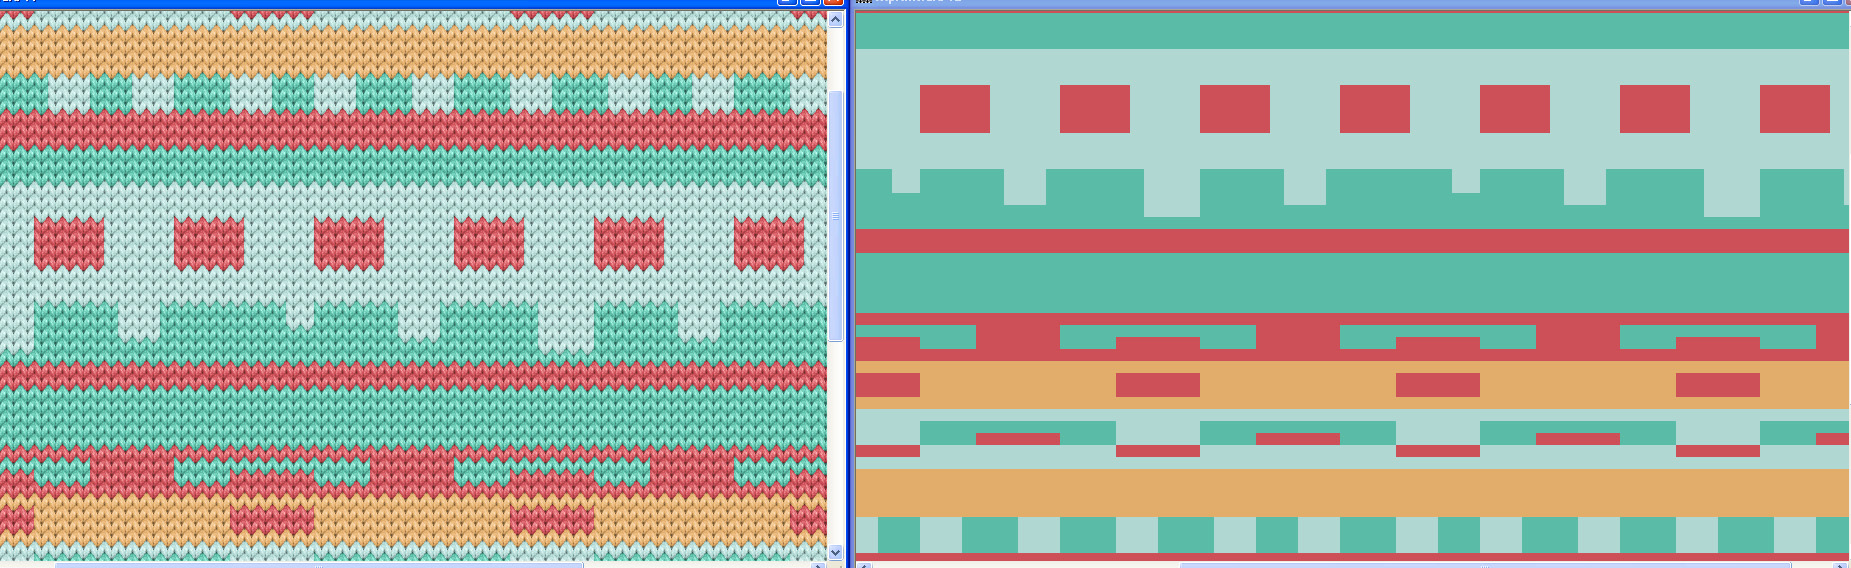 side by side view of a stitch simulation and the design view